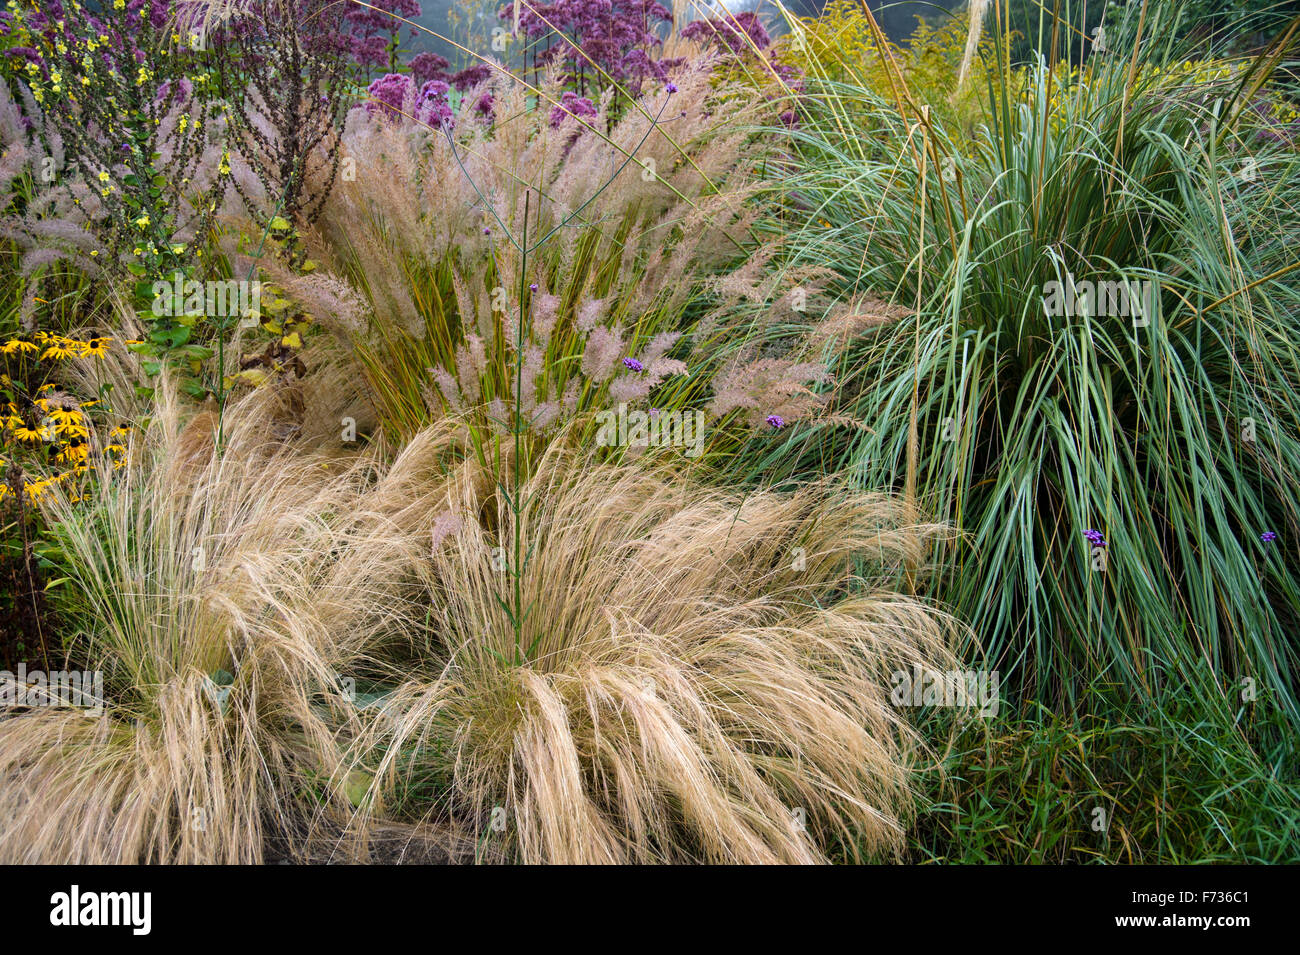 Ornamental grasses in garden border in autumn stock photo for Border grasses for landscaping